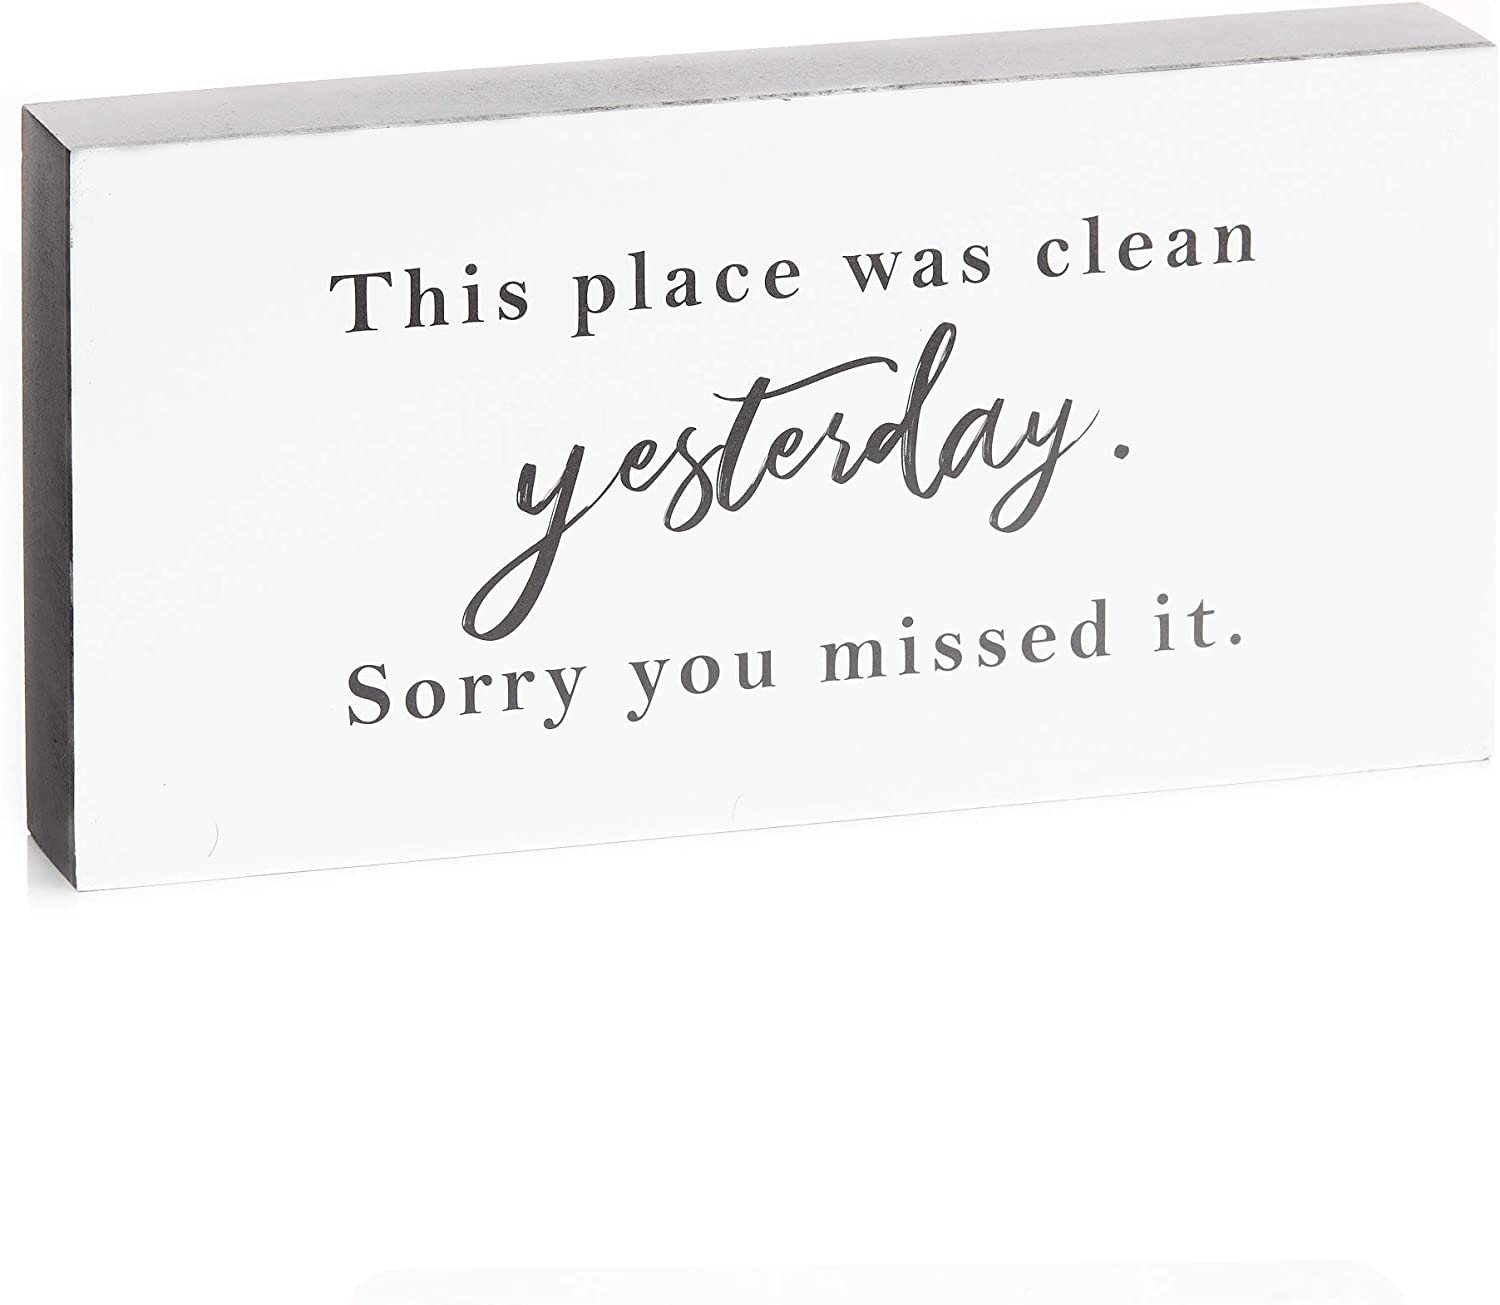 ReLIVE Decorative Expressions 5 x 10 Inch Wooden Box Sign - Clean Yesterday